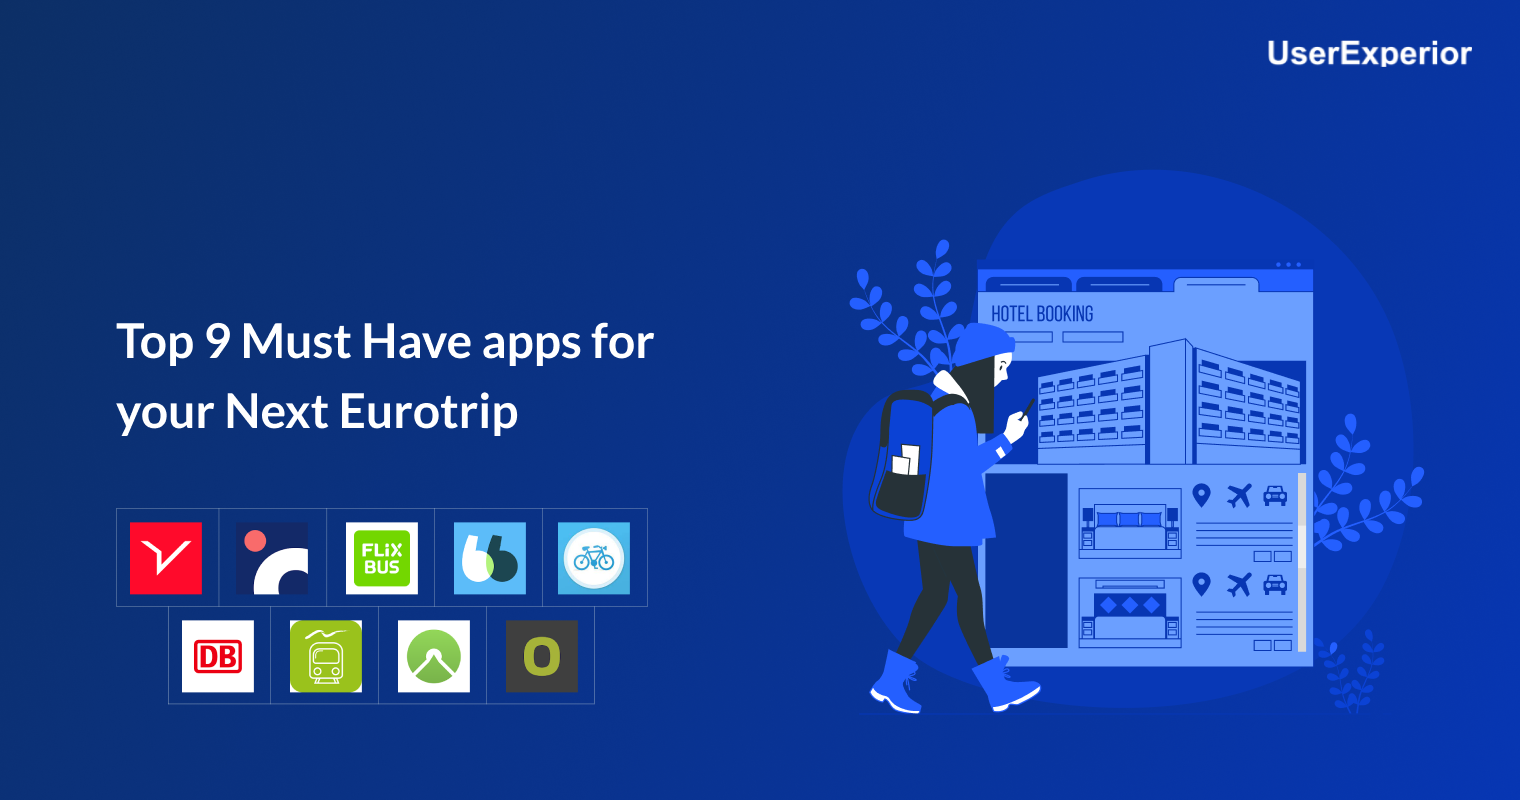 Top 9 Must Have Apps for Your Next Eurotrip